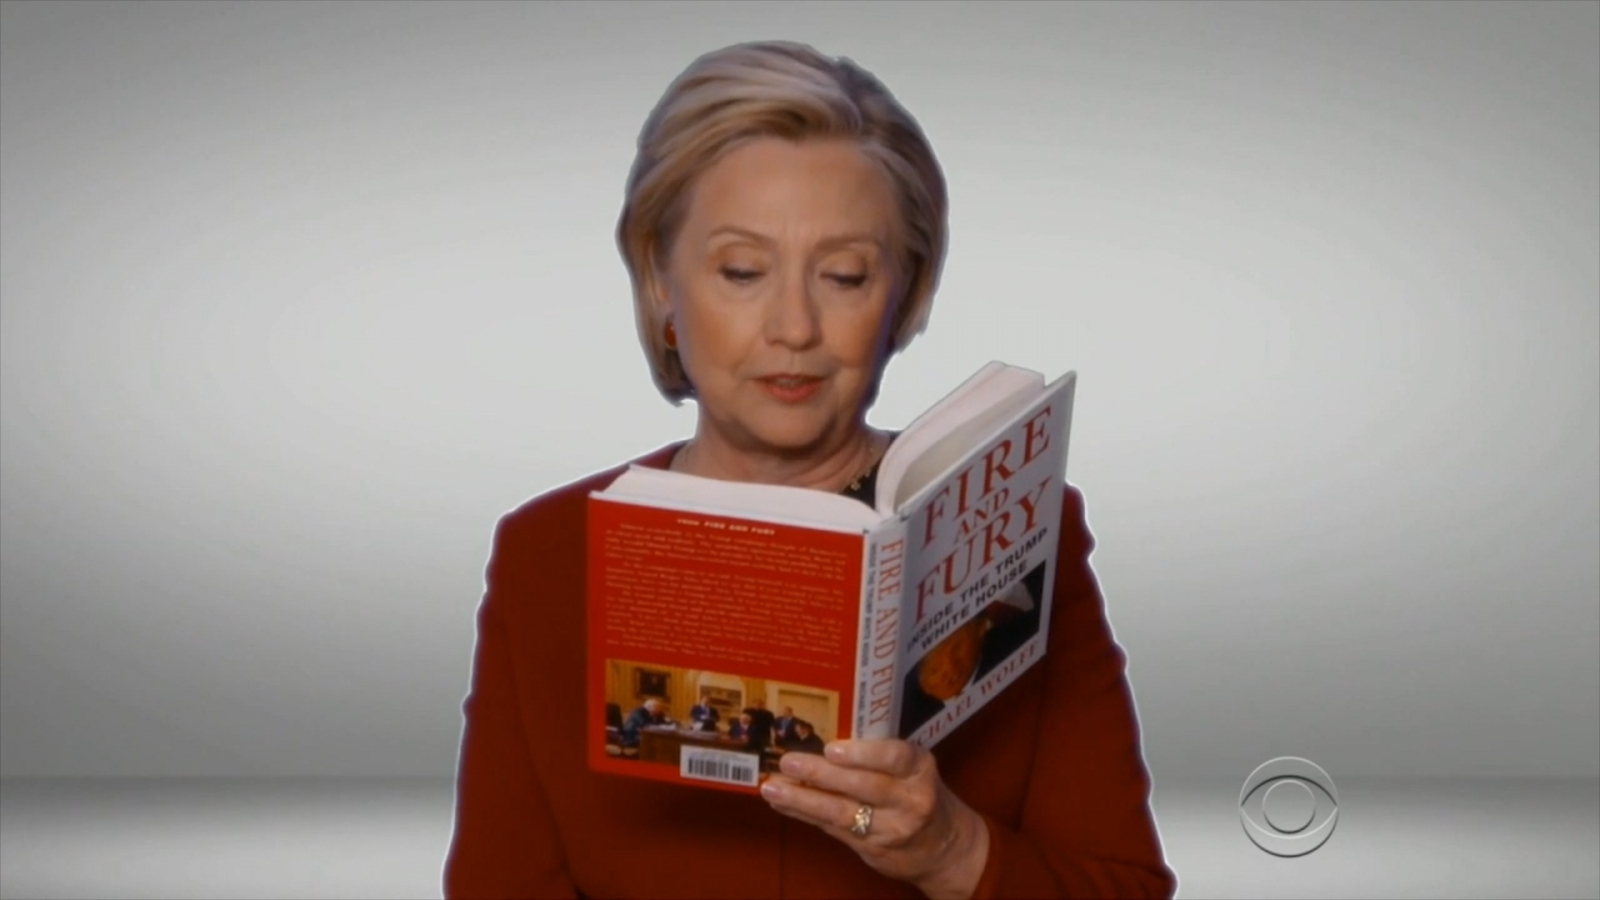 Hillary Clinton, Cardi B and other celebrities read 'Fire and Fury' in 2018 Grammys skit